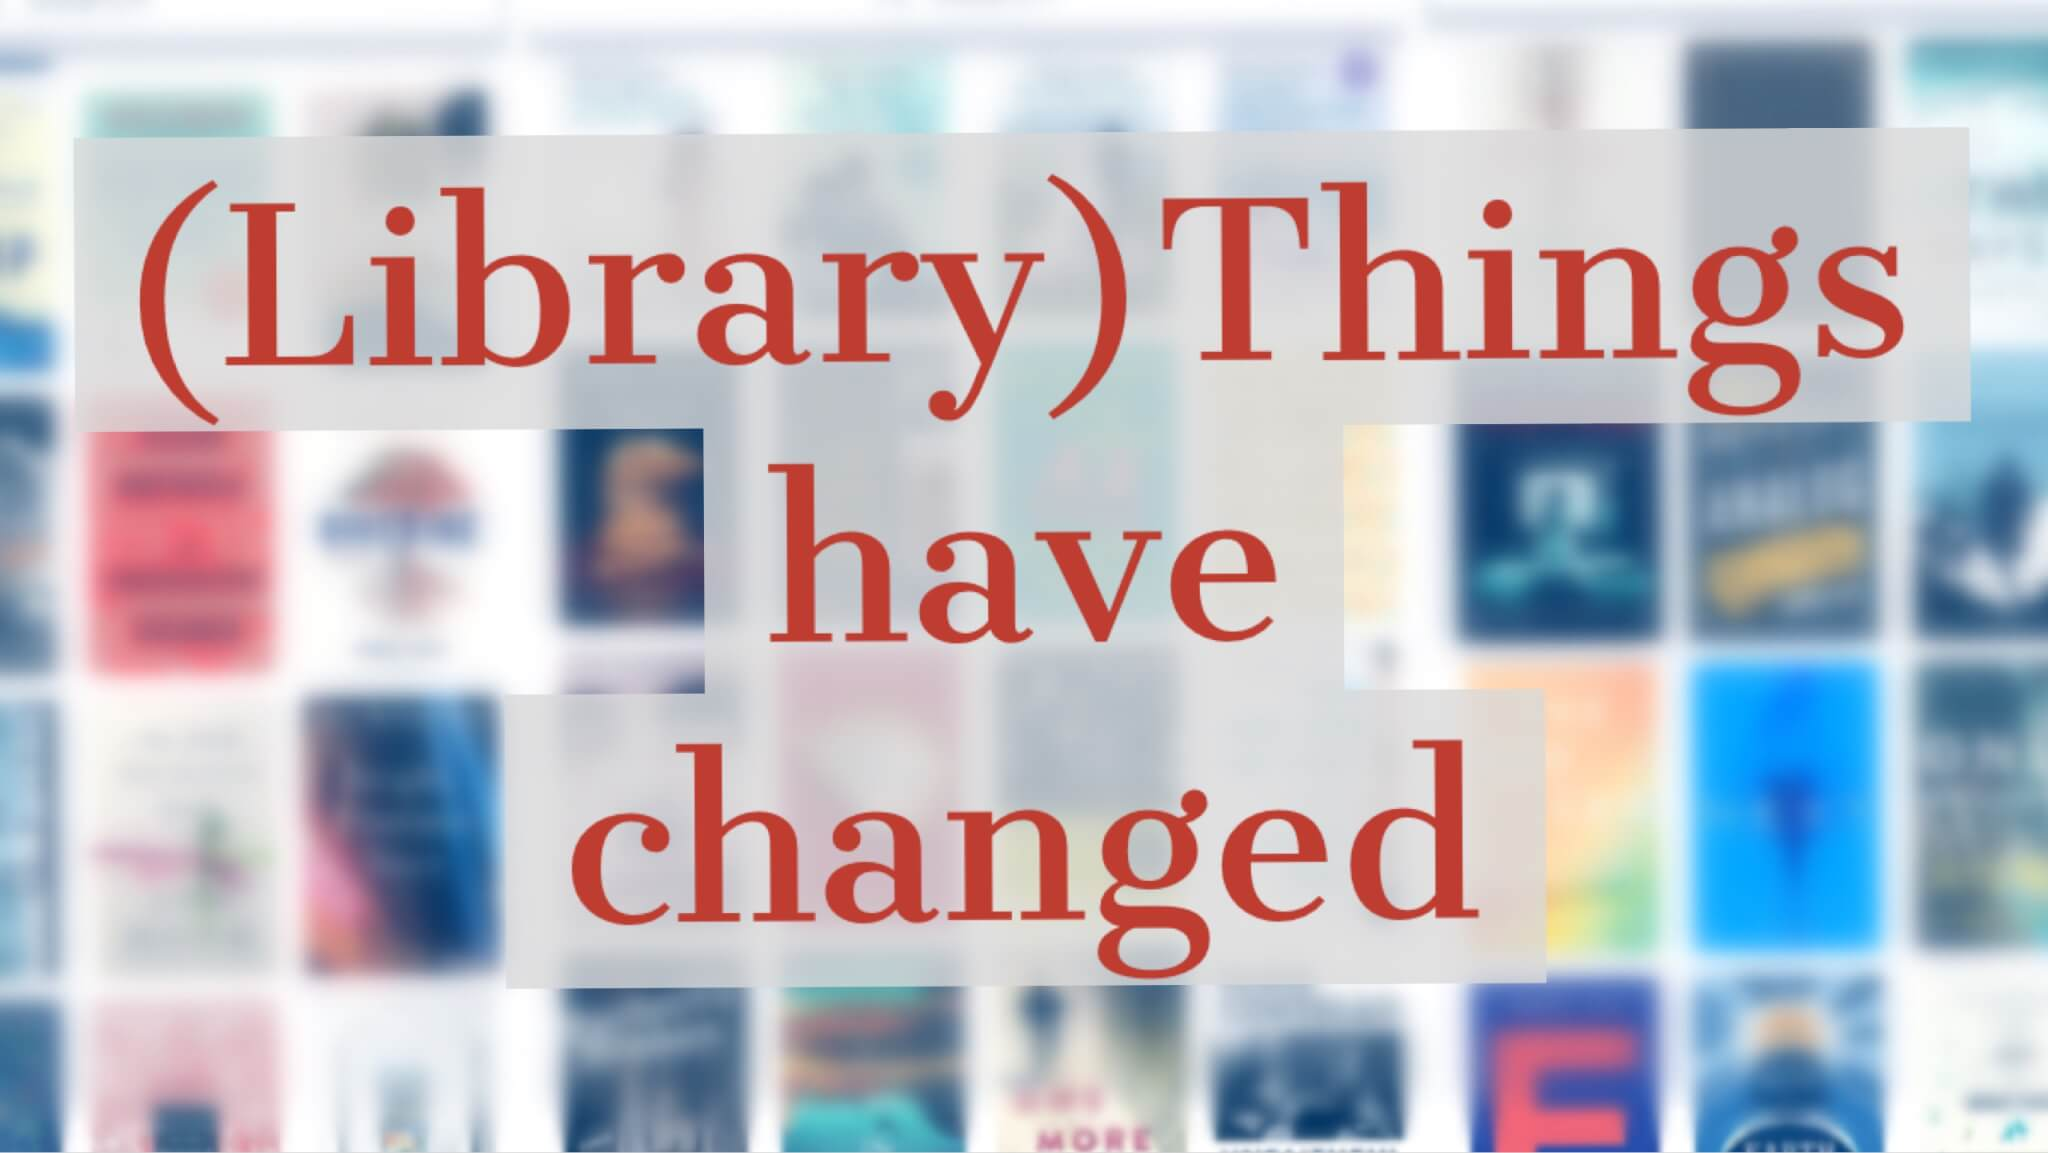 LibraryThings Have Changed: I Still Love You, LT, But It's Not The Same